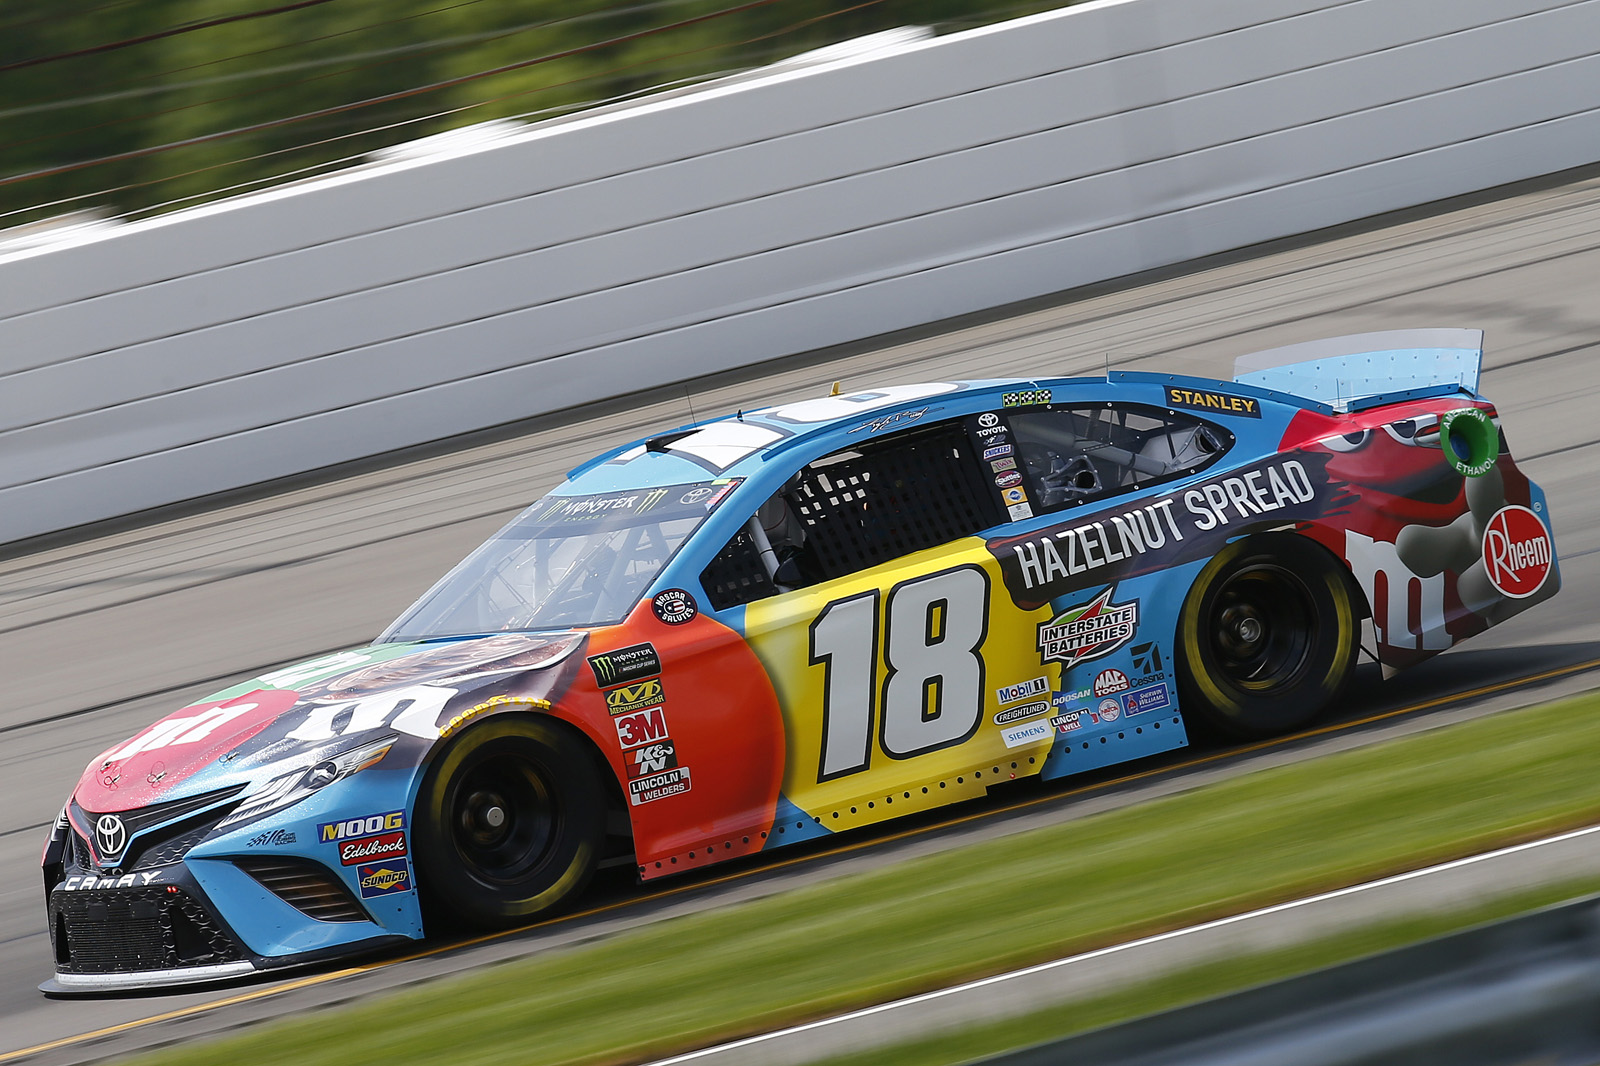 Monster Energy NASCAR Cup Series Race Pocono 400 – Day 1 Practice